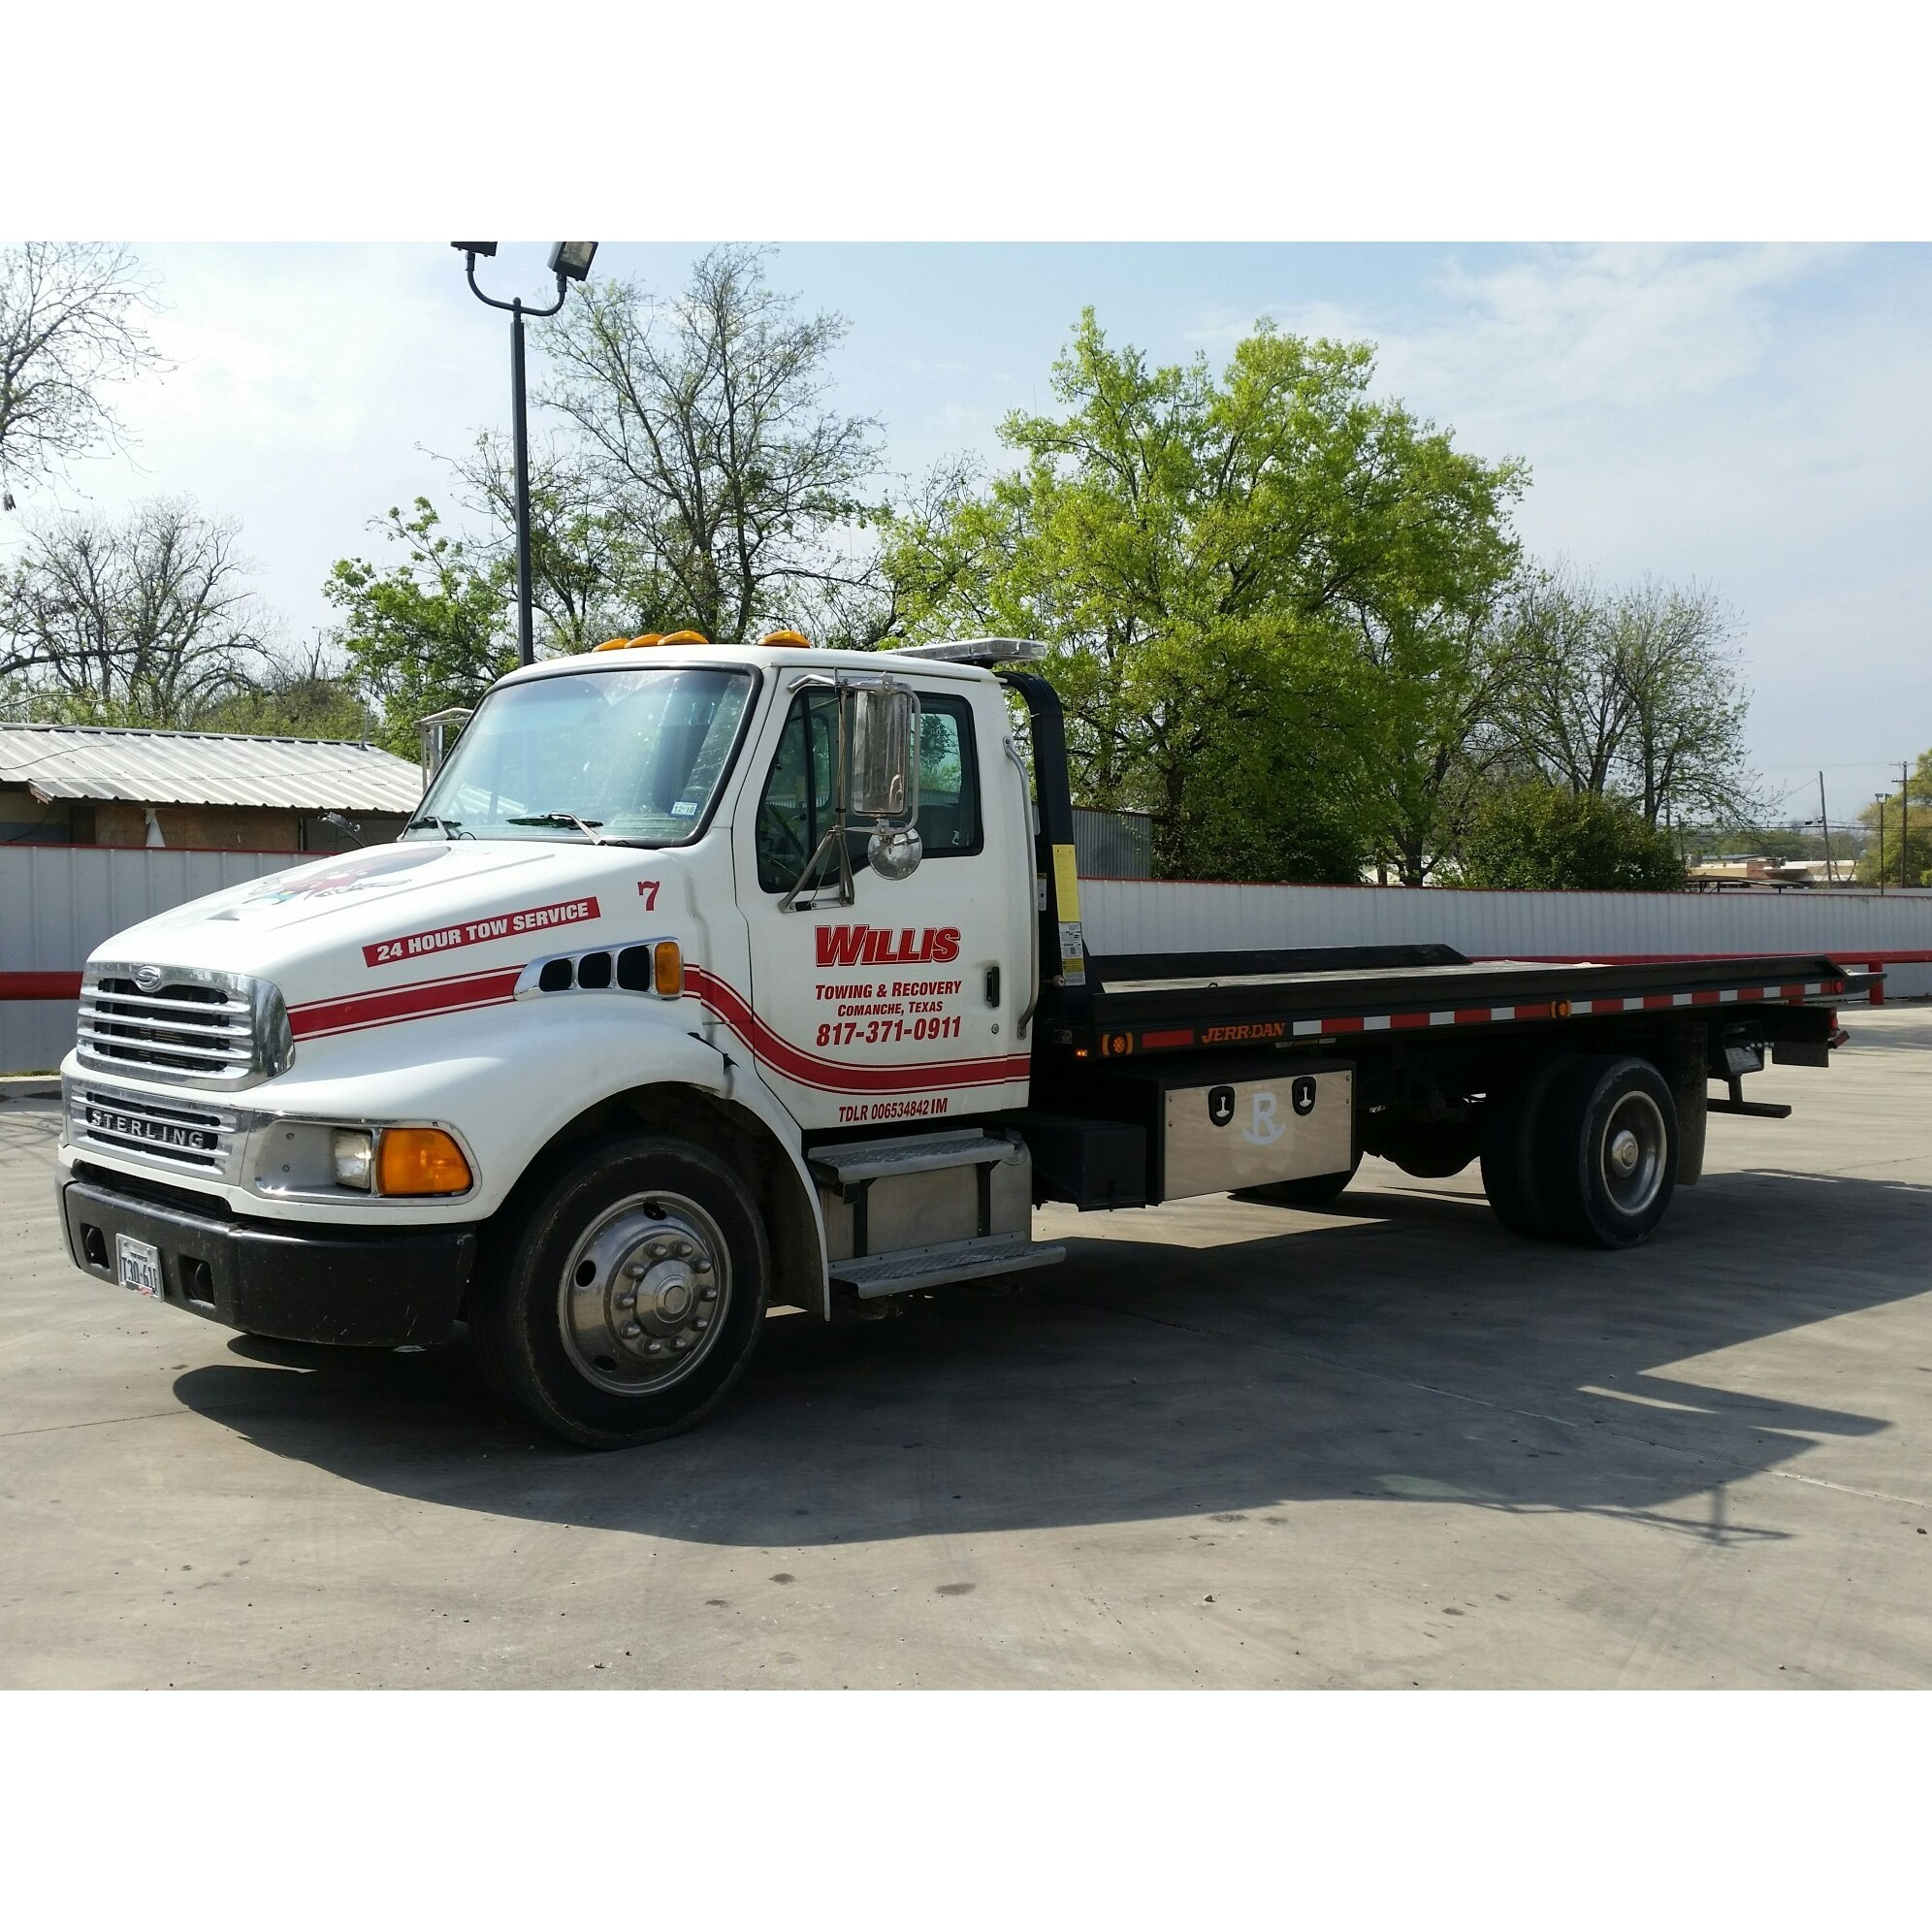 Willis Towing and Recovery